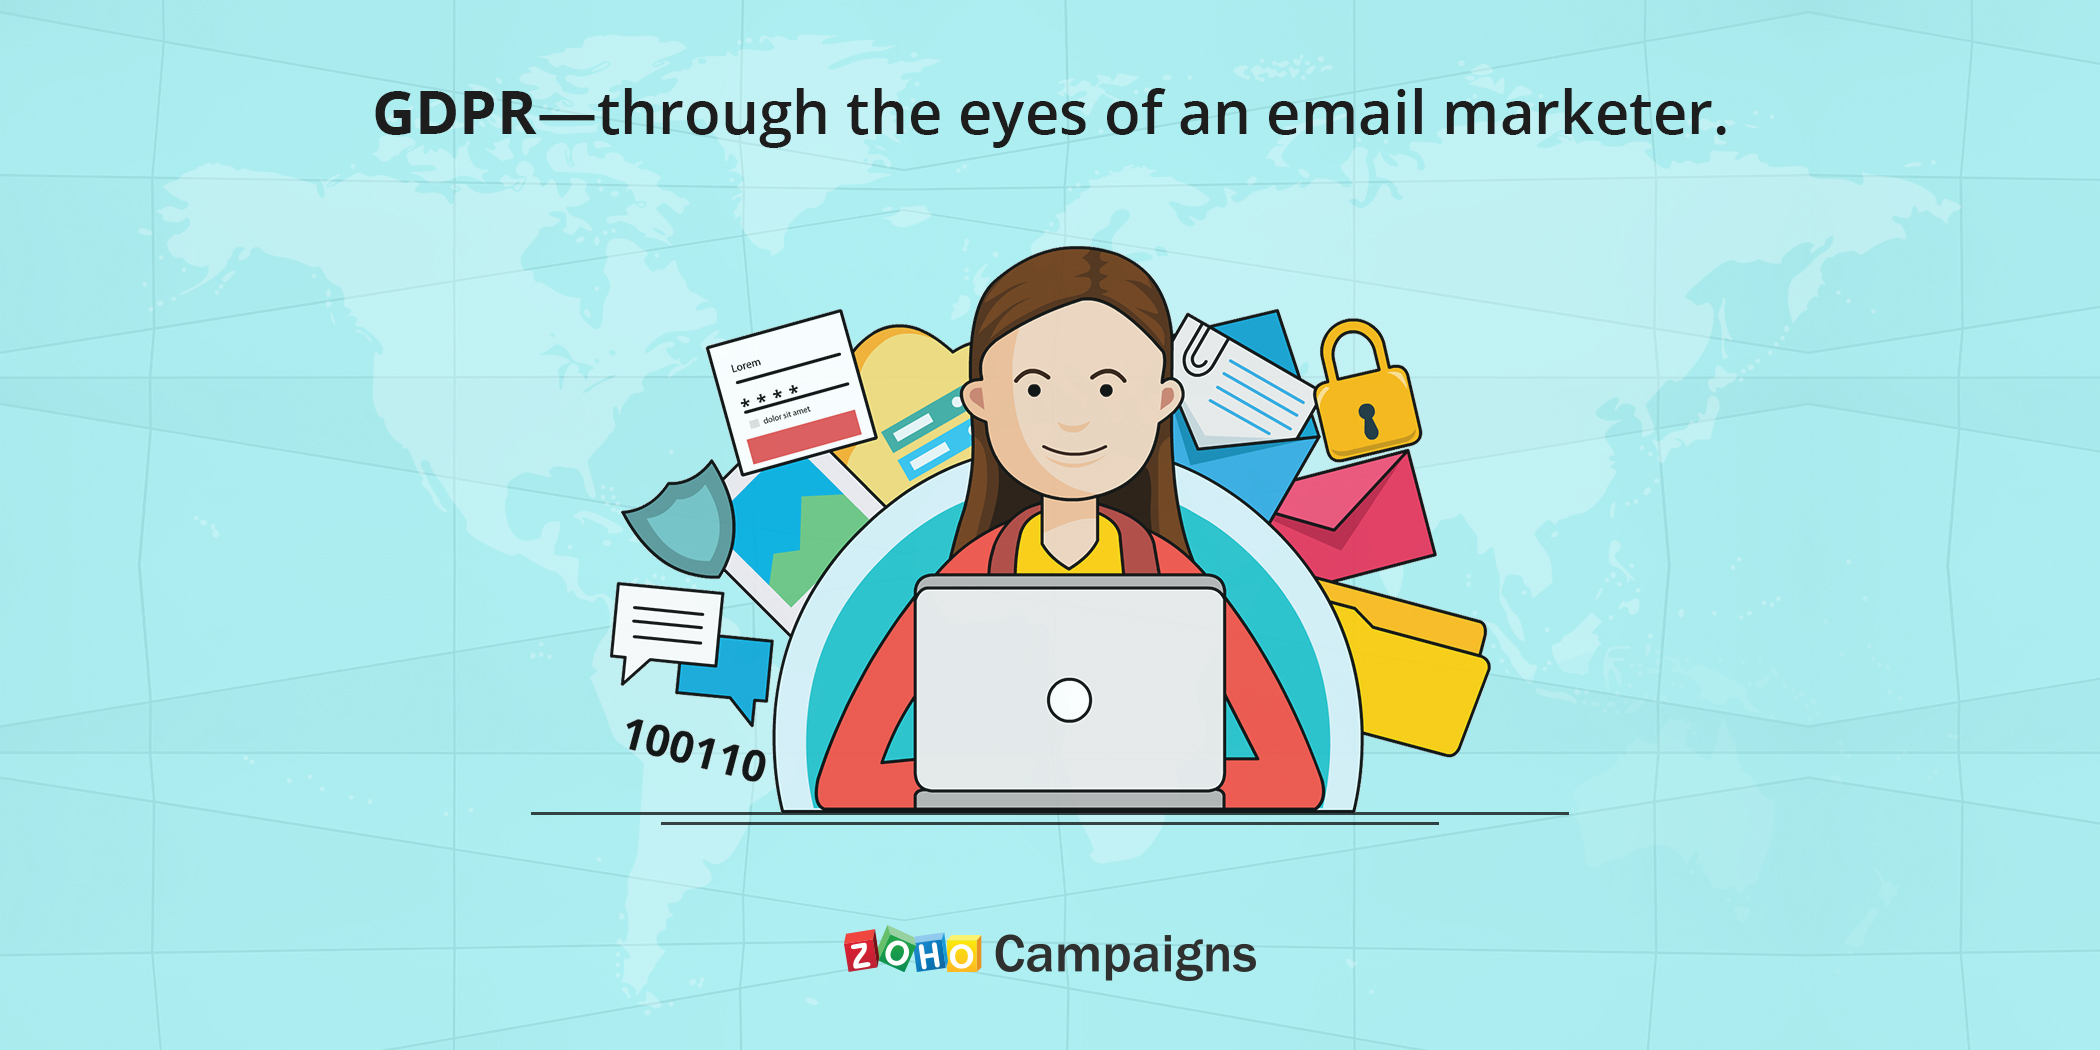 GDPR—through the eyes of an email marketer.